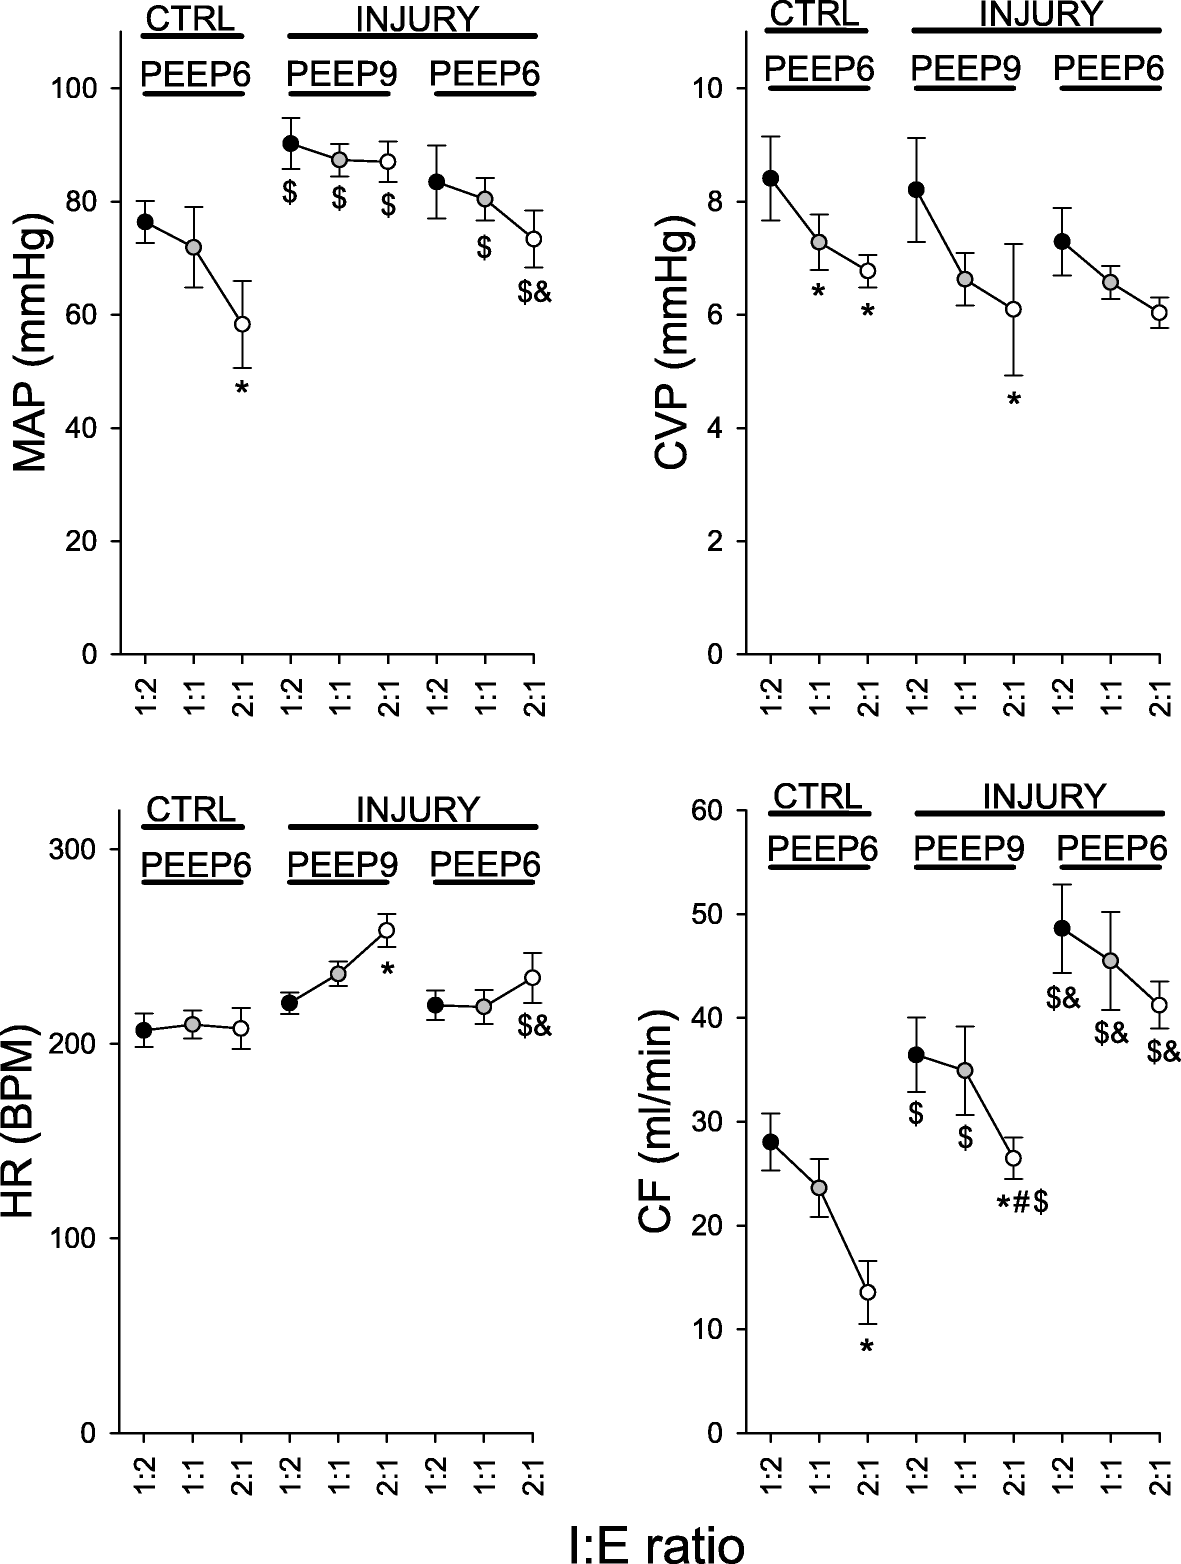 Effect of PEEP and I:E ratio on cerel oxygenation in ARDS ... on intracranial pressure, blood pressure, segmental arterial pressure, mean blood pressure, pulse pressure, pulmonary arterial pressure, korotkoff sounds, mean bp, mean pulse pressure chart, heart rate, arterial line pressure, human body temperature,